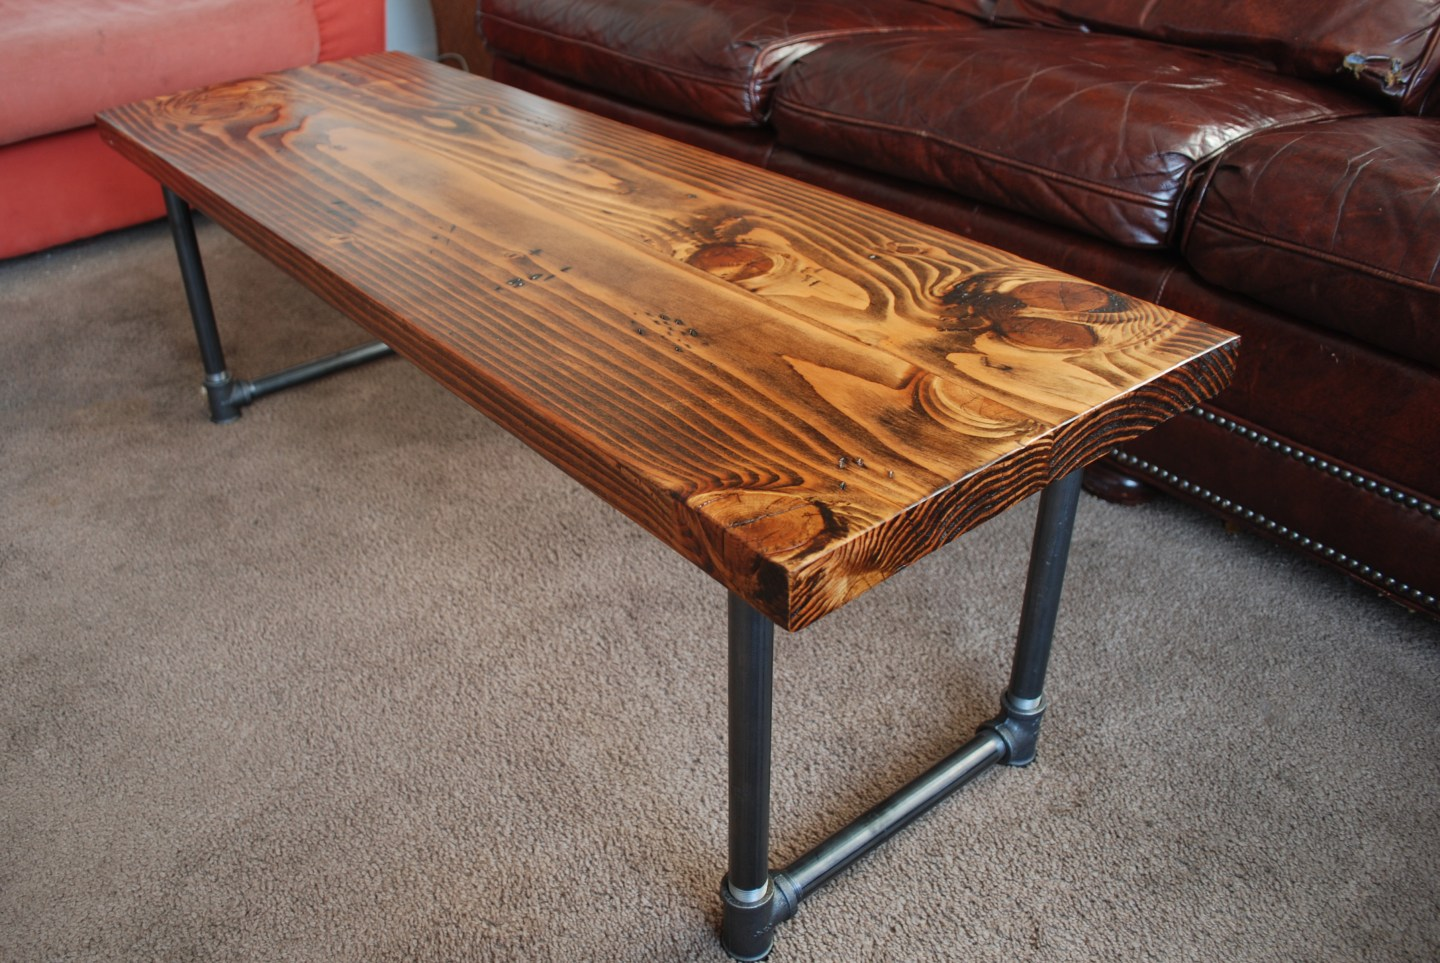 Wooden Tables For Sale For Sale Industrial Reclaimed Wood Coffee Table